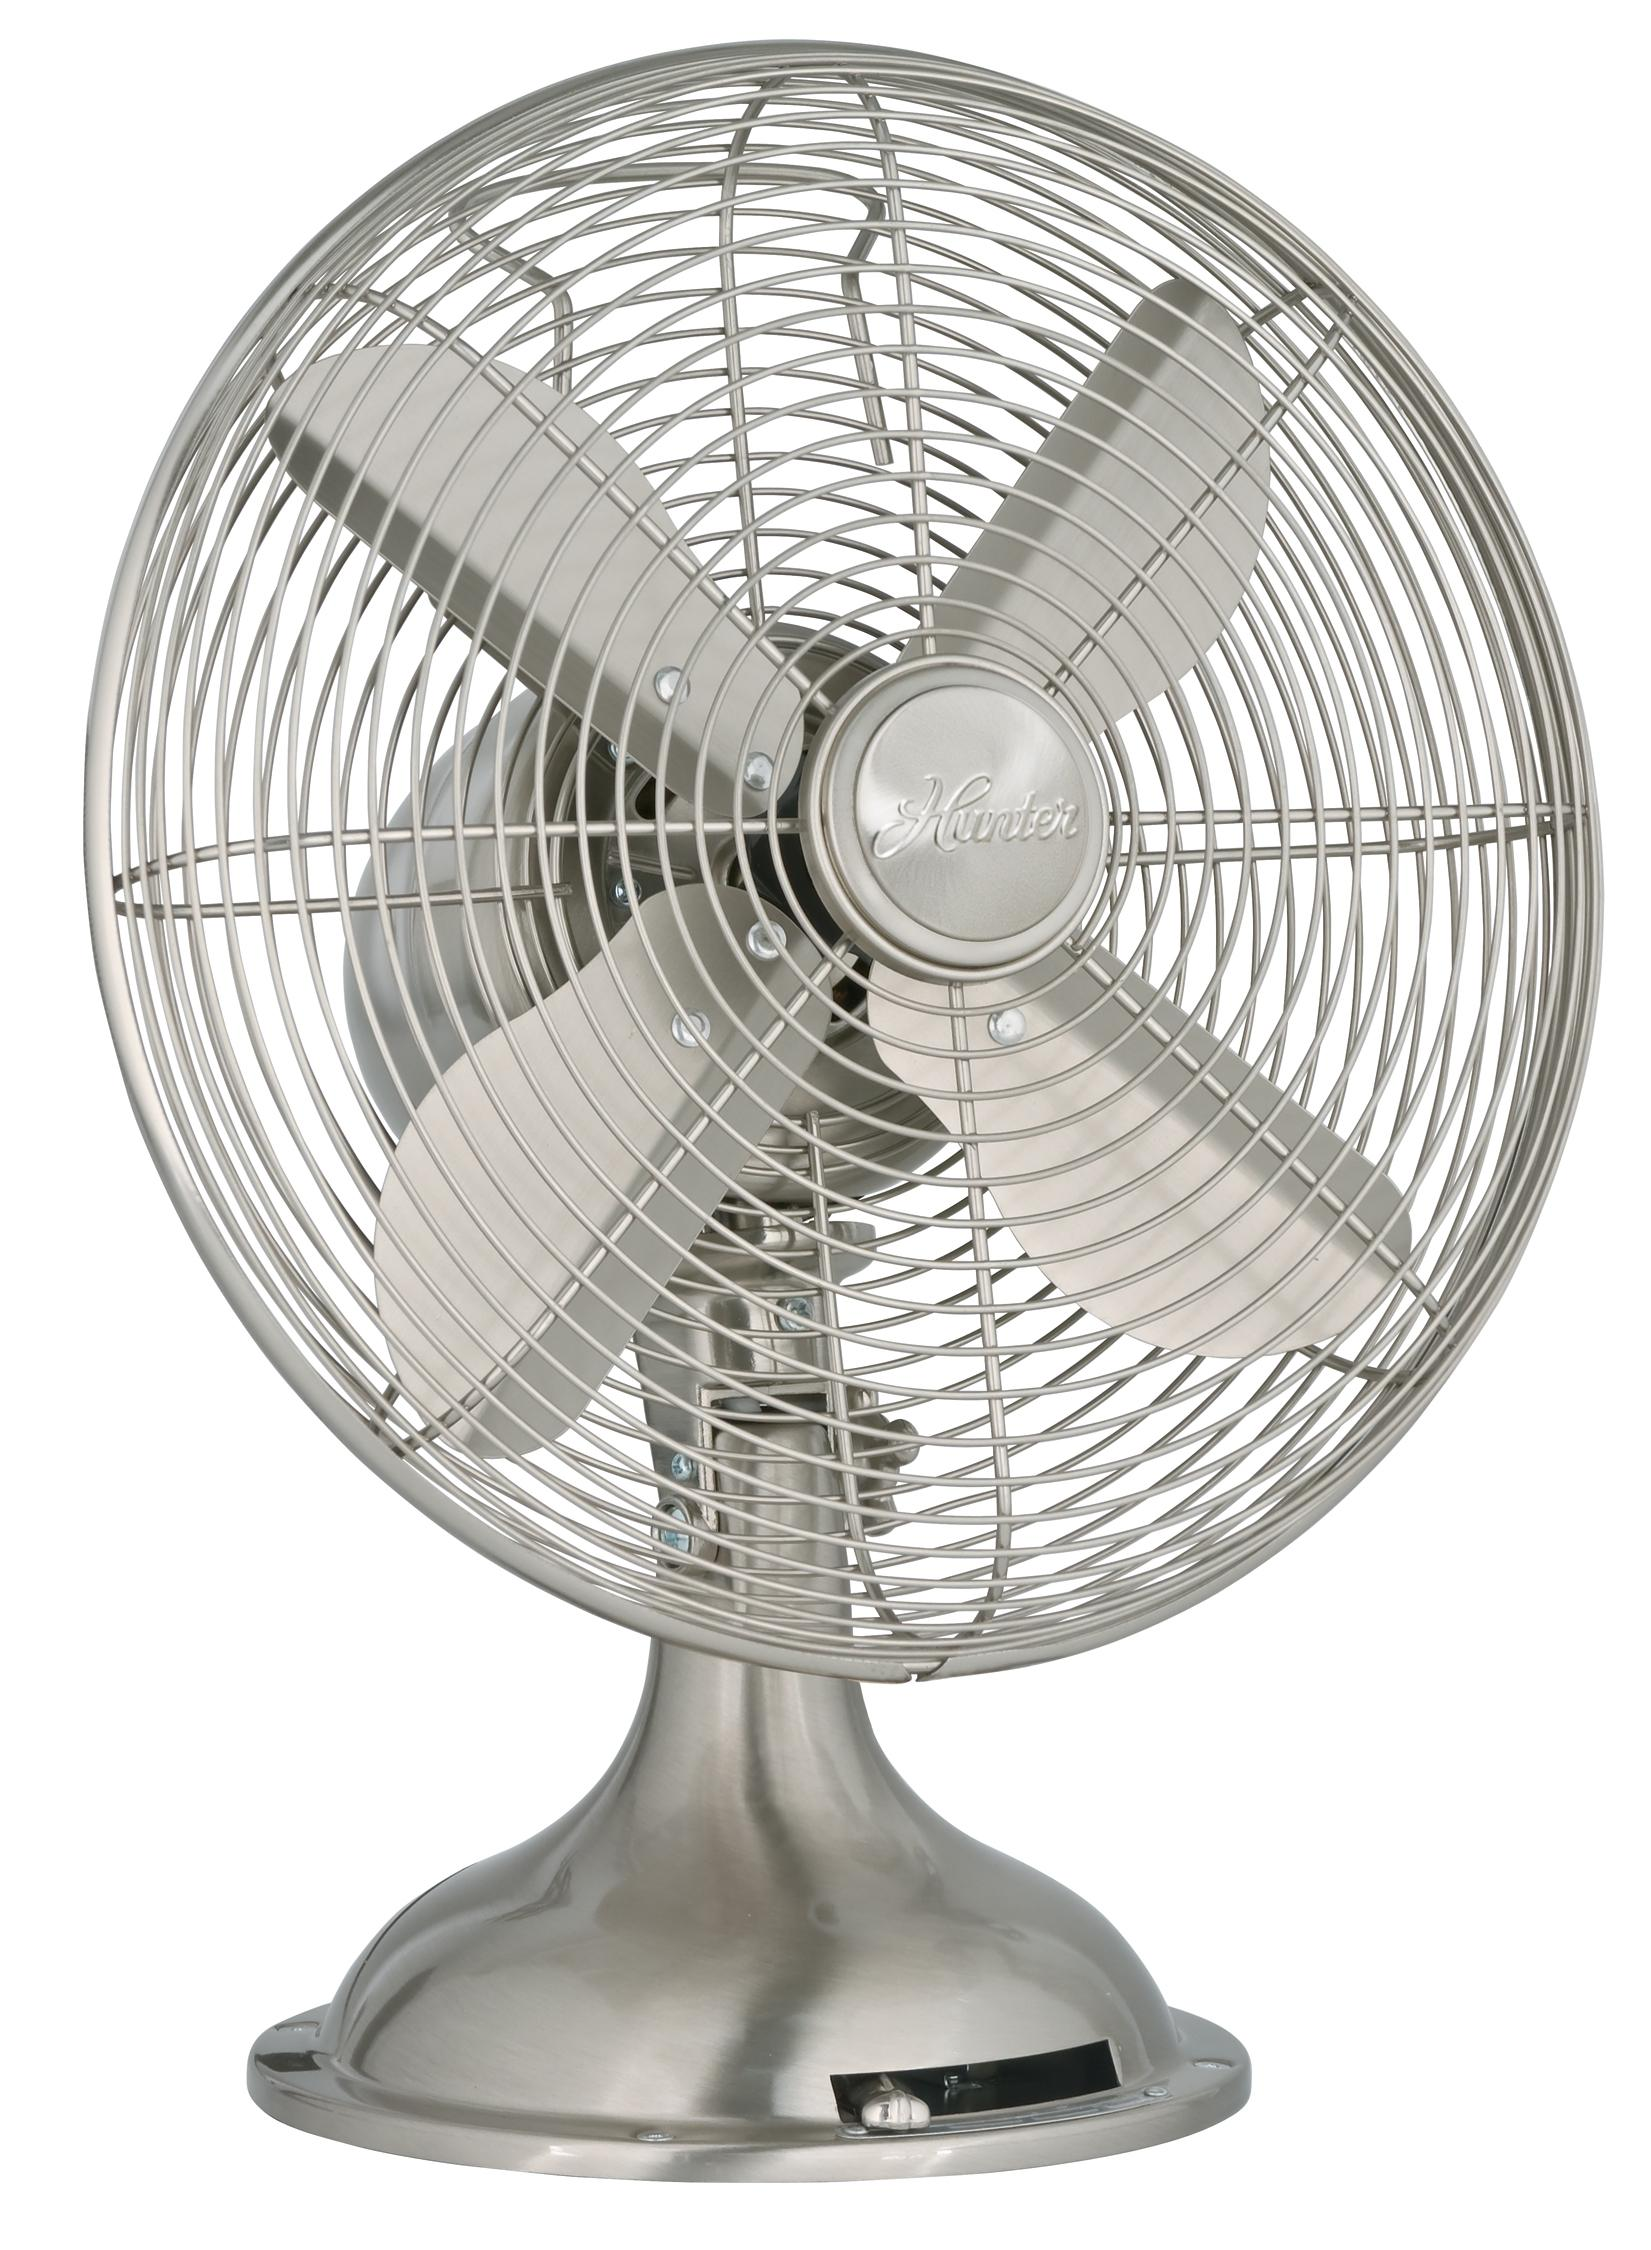 table fan best table fan fan fans table fans oscillating fan  #575448